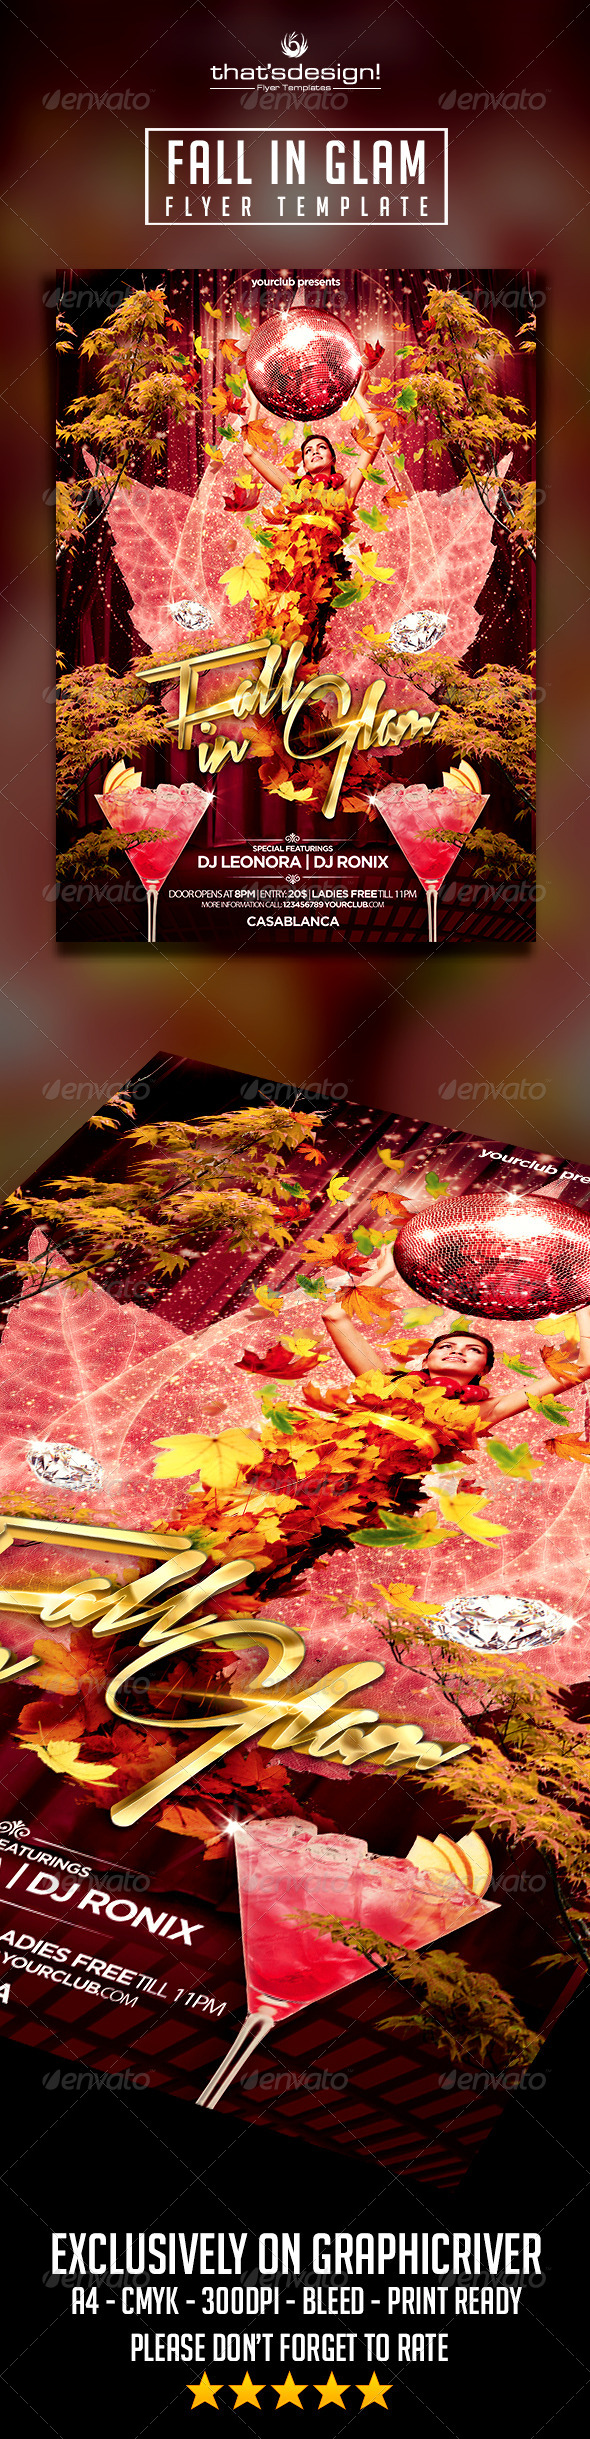 Fall In Glam Party Flyer - Print Templates